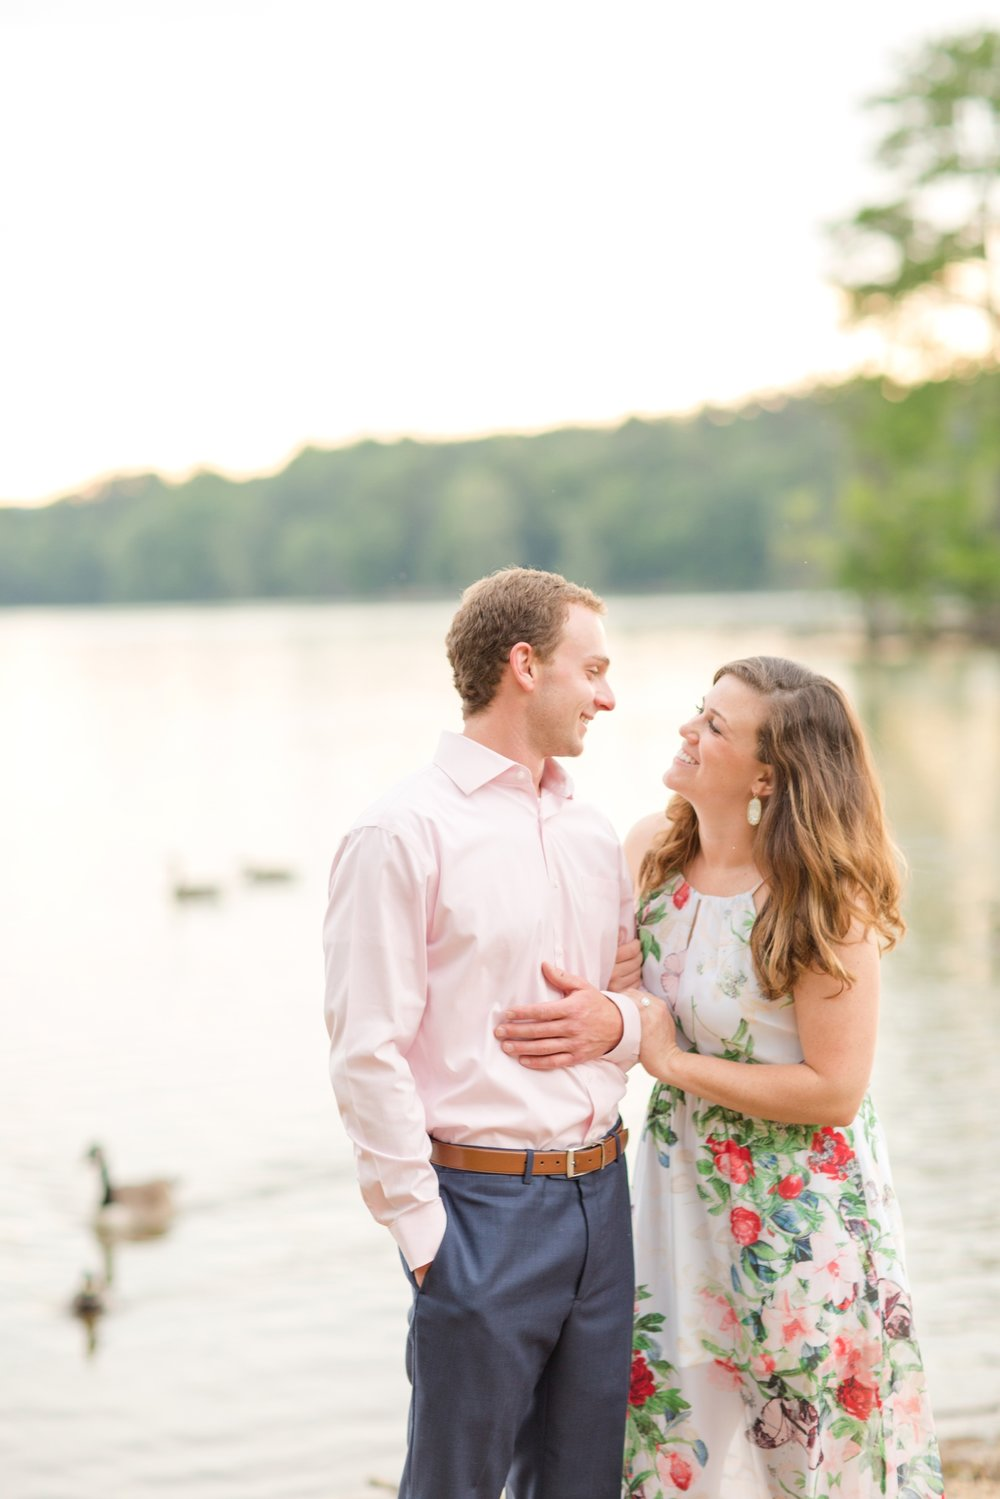 Allie & Tommy Engagement-238_anna grace photography loch raven reservoir engagement baltimore maryland wedding and engagement photographer photo.jpg